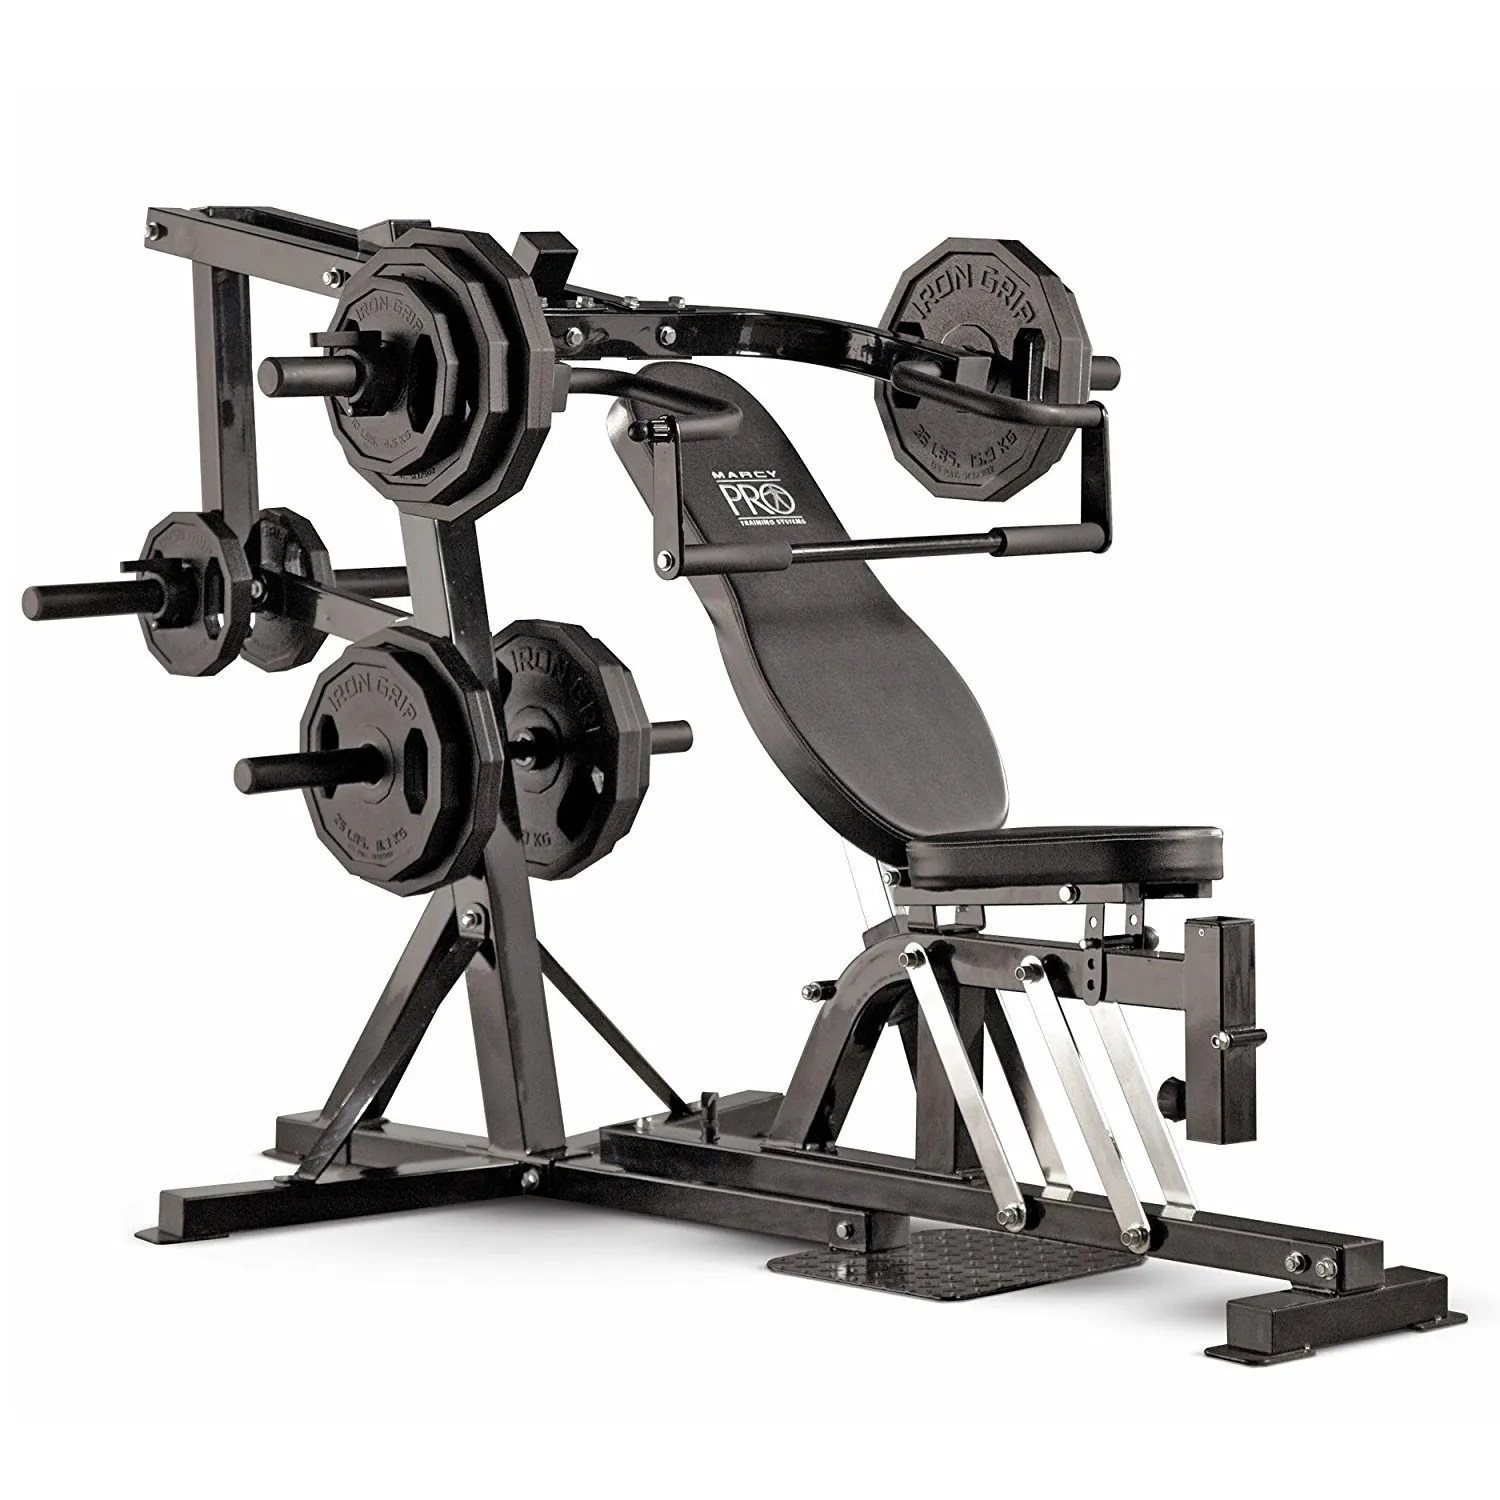 Marcy Pro PM4400 Leverage Home Multi Gym and Bench